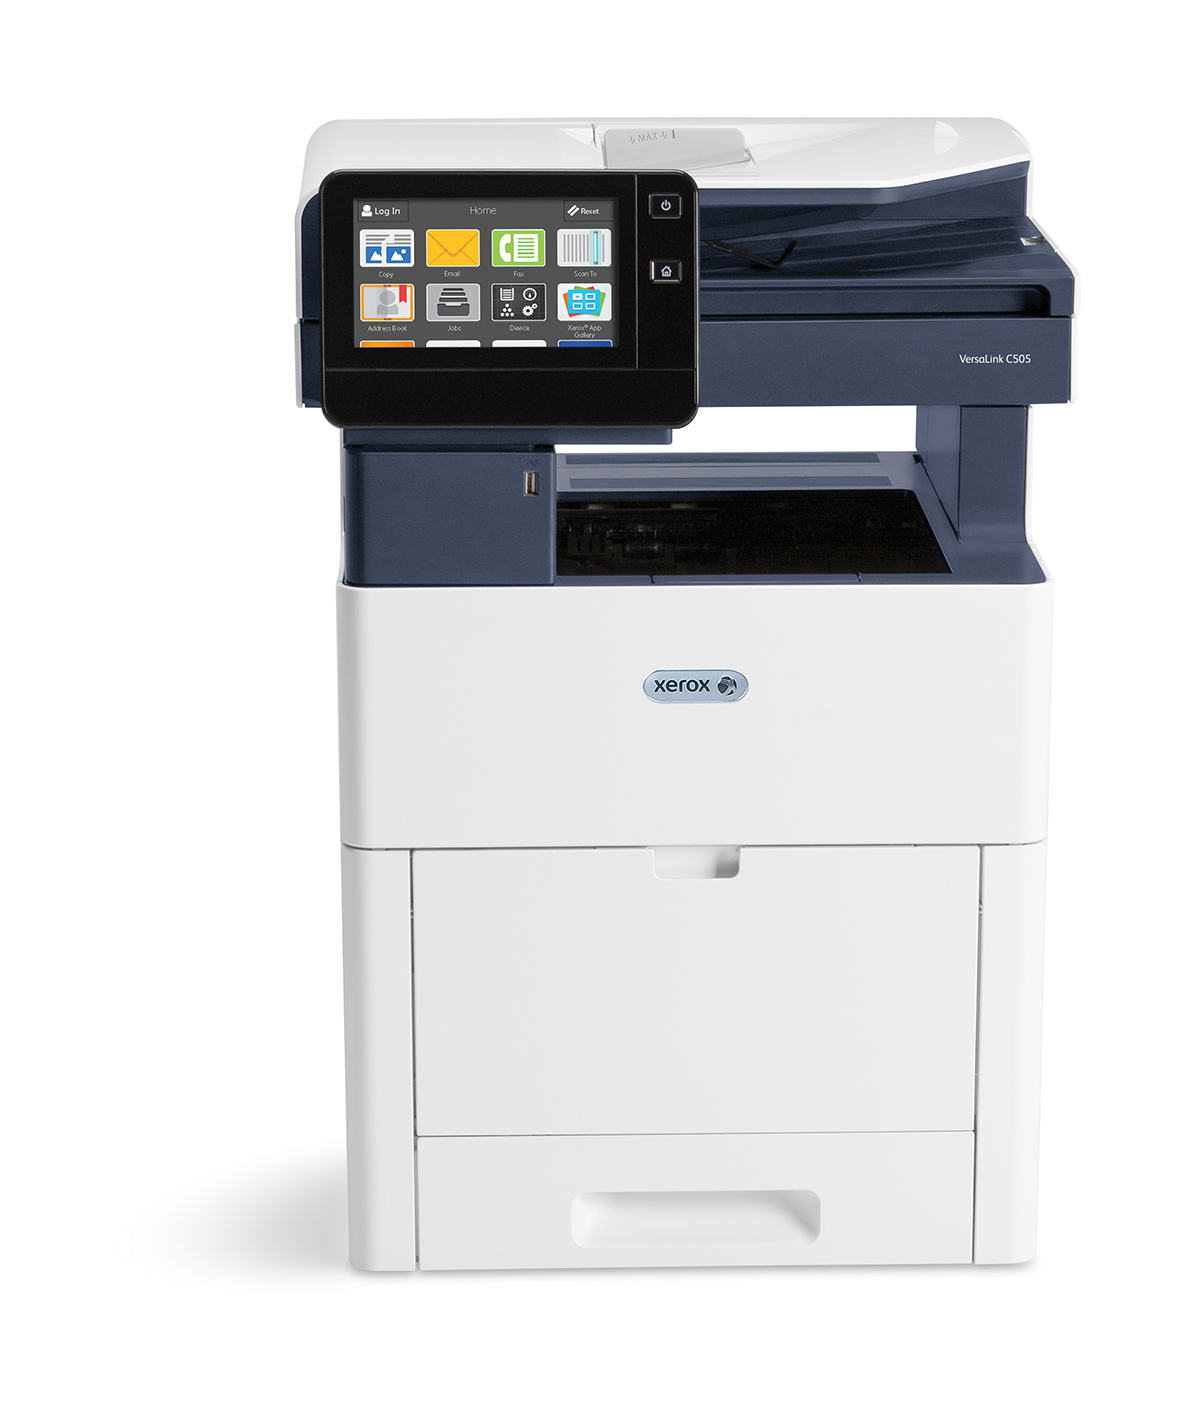 Xerox VersaLink C505 A4 45Ppm Duplex Copy/Print/Scan Sold Ps3 Pcl5E/6 2 Trays 700 Sheets Does Not Support Finisher